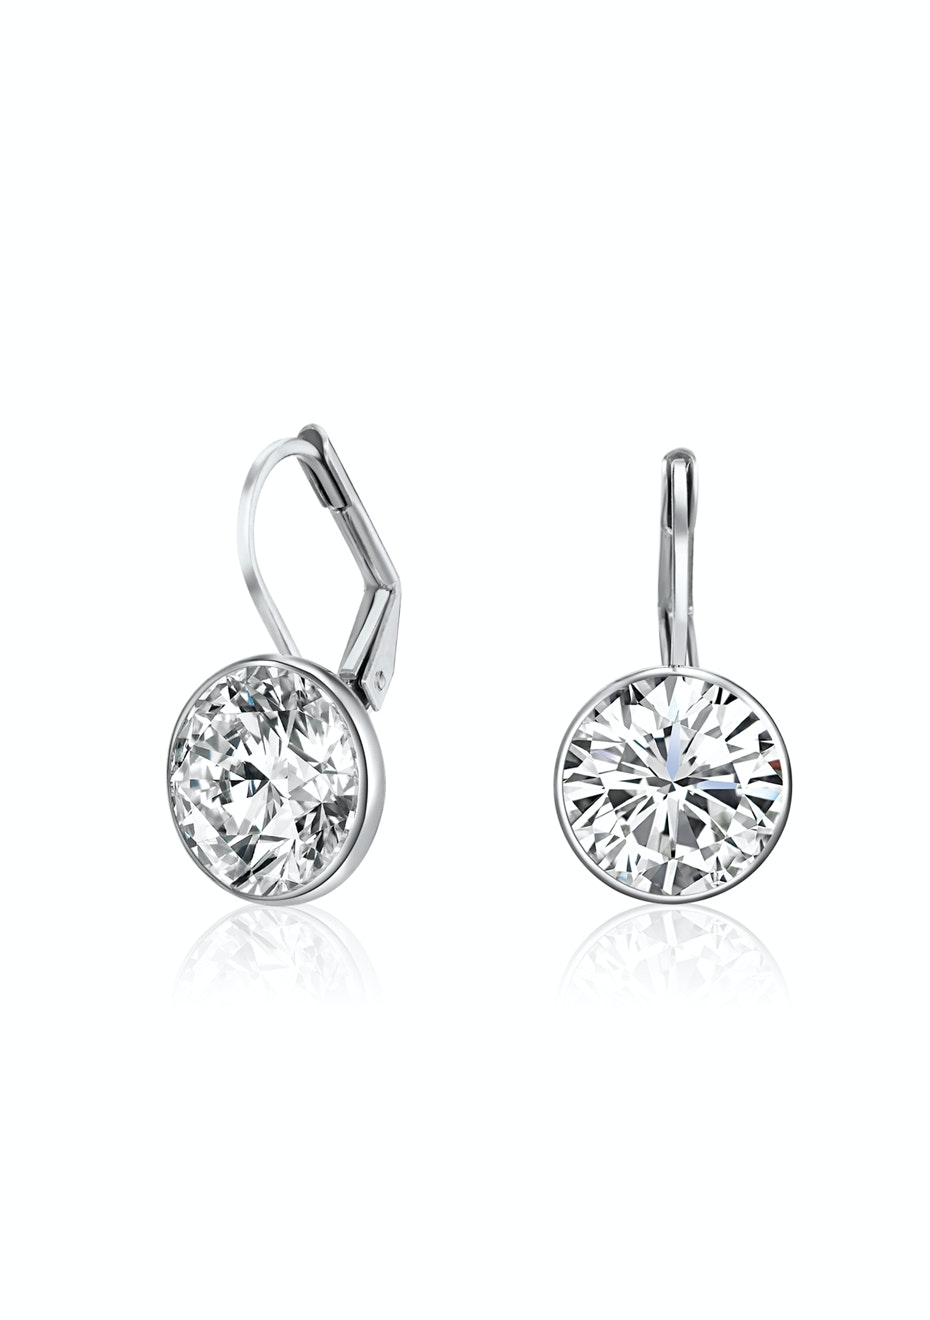 Drop Earrings White gold plated Embellished with Crystals from Swarovski